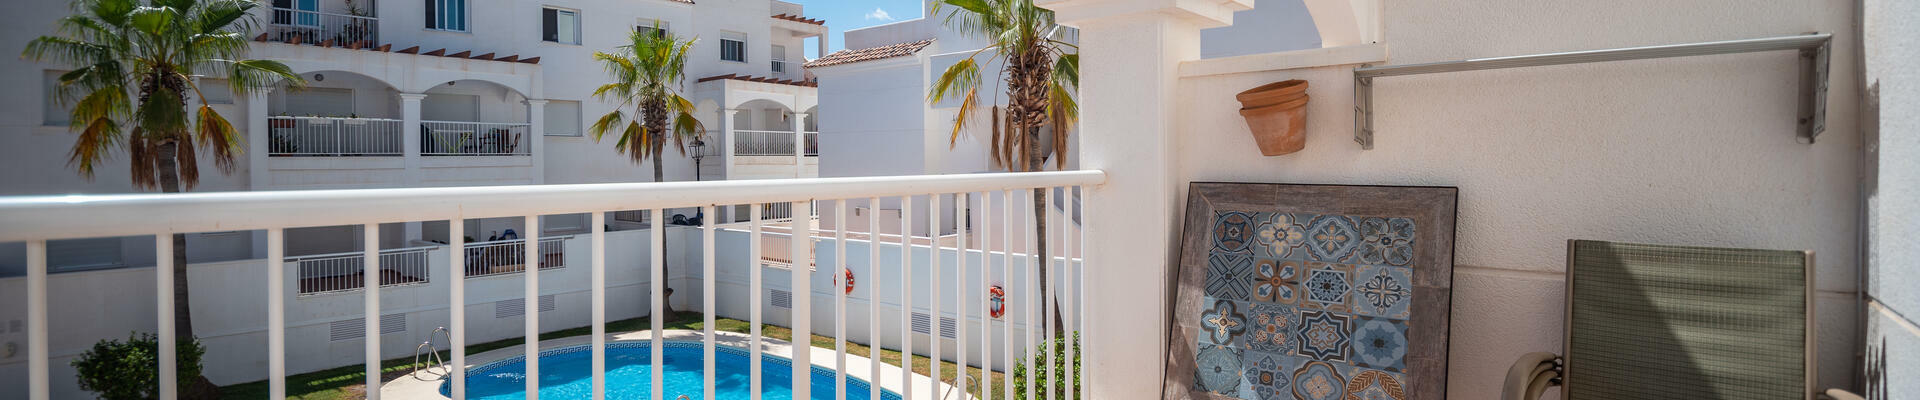 A1436: 2 Bedroom Apartment for Sale